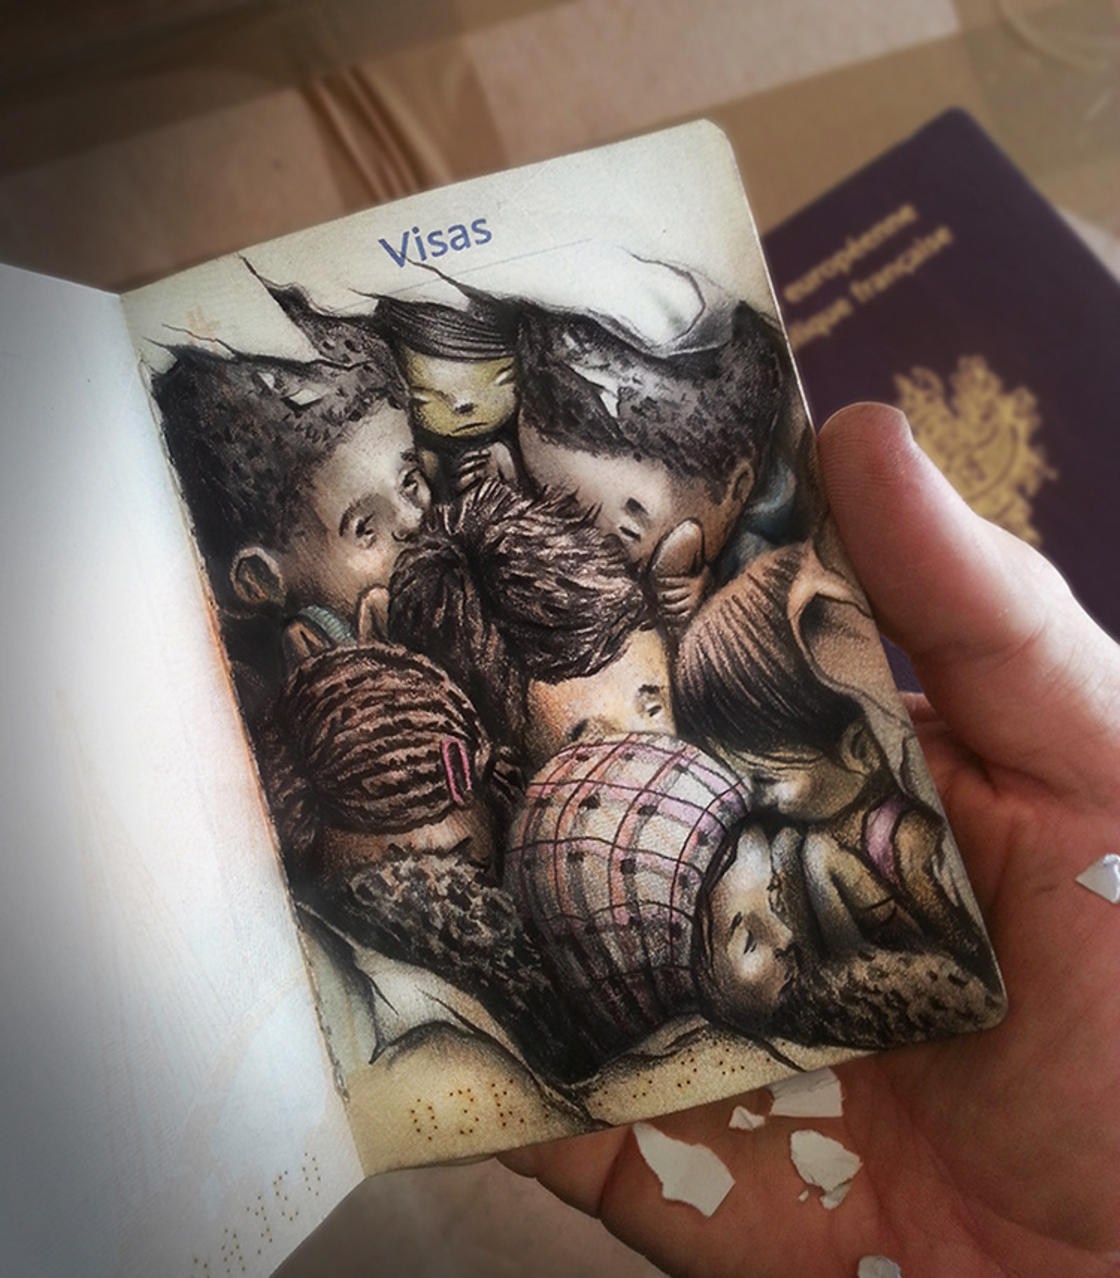 Dream and Nightmare – The latest powerful illustrations by PEZ